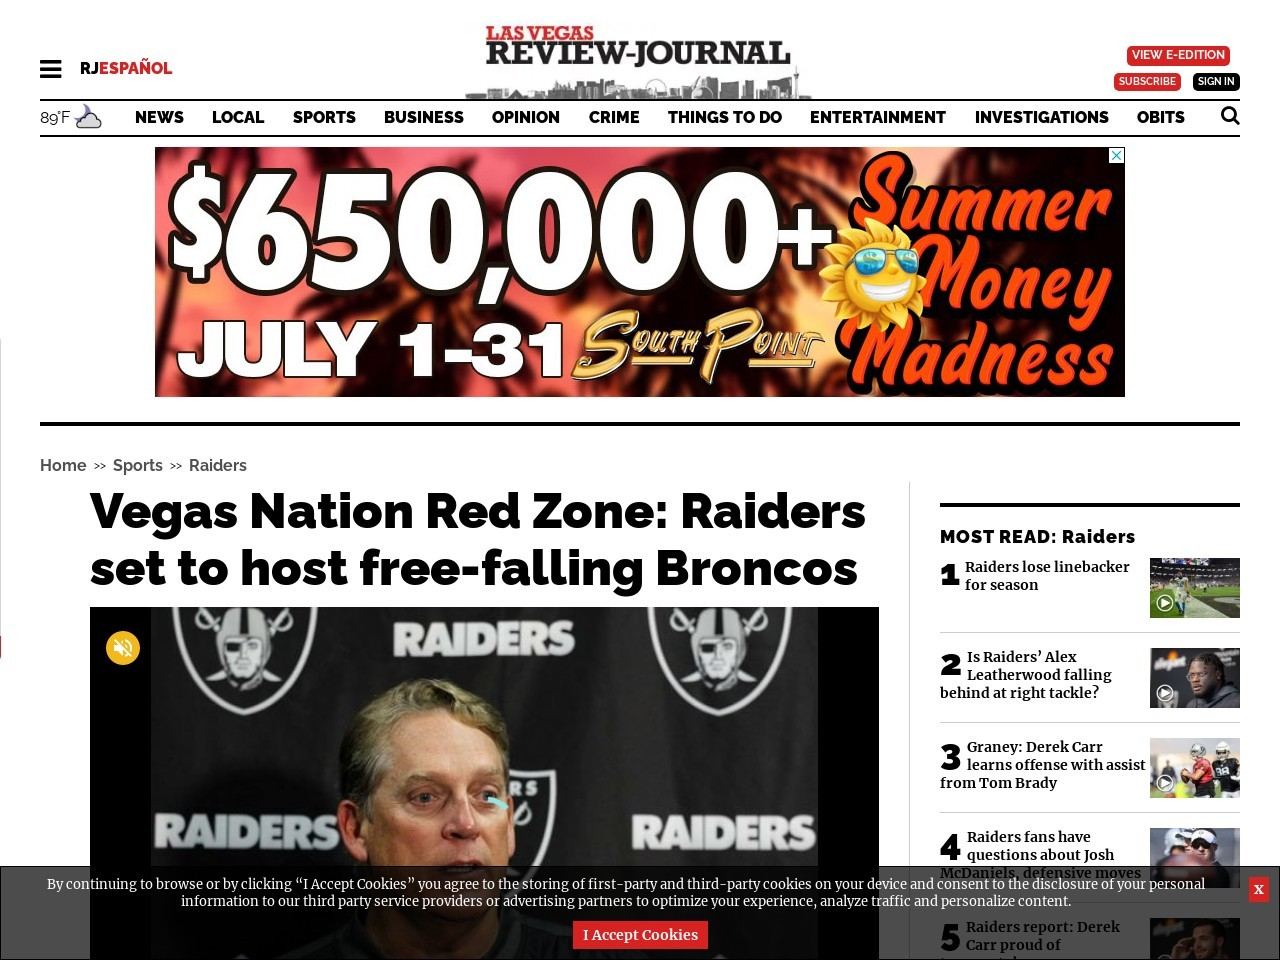 Vegas Nation Red Zone: Raiders set to host free-falling Broncos